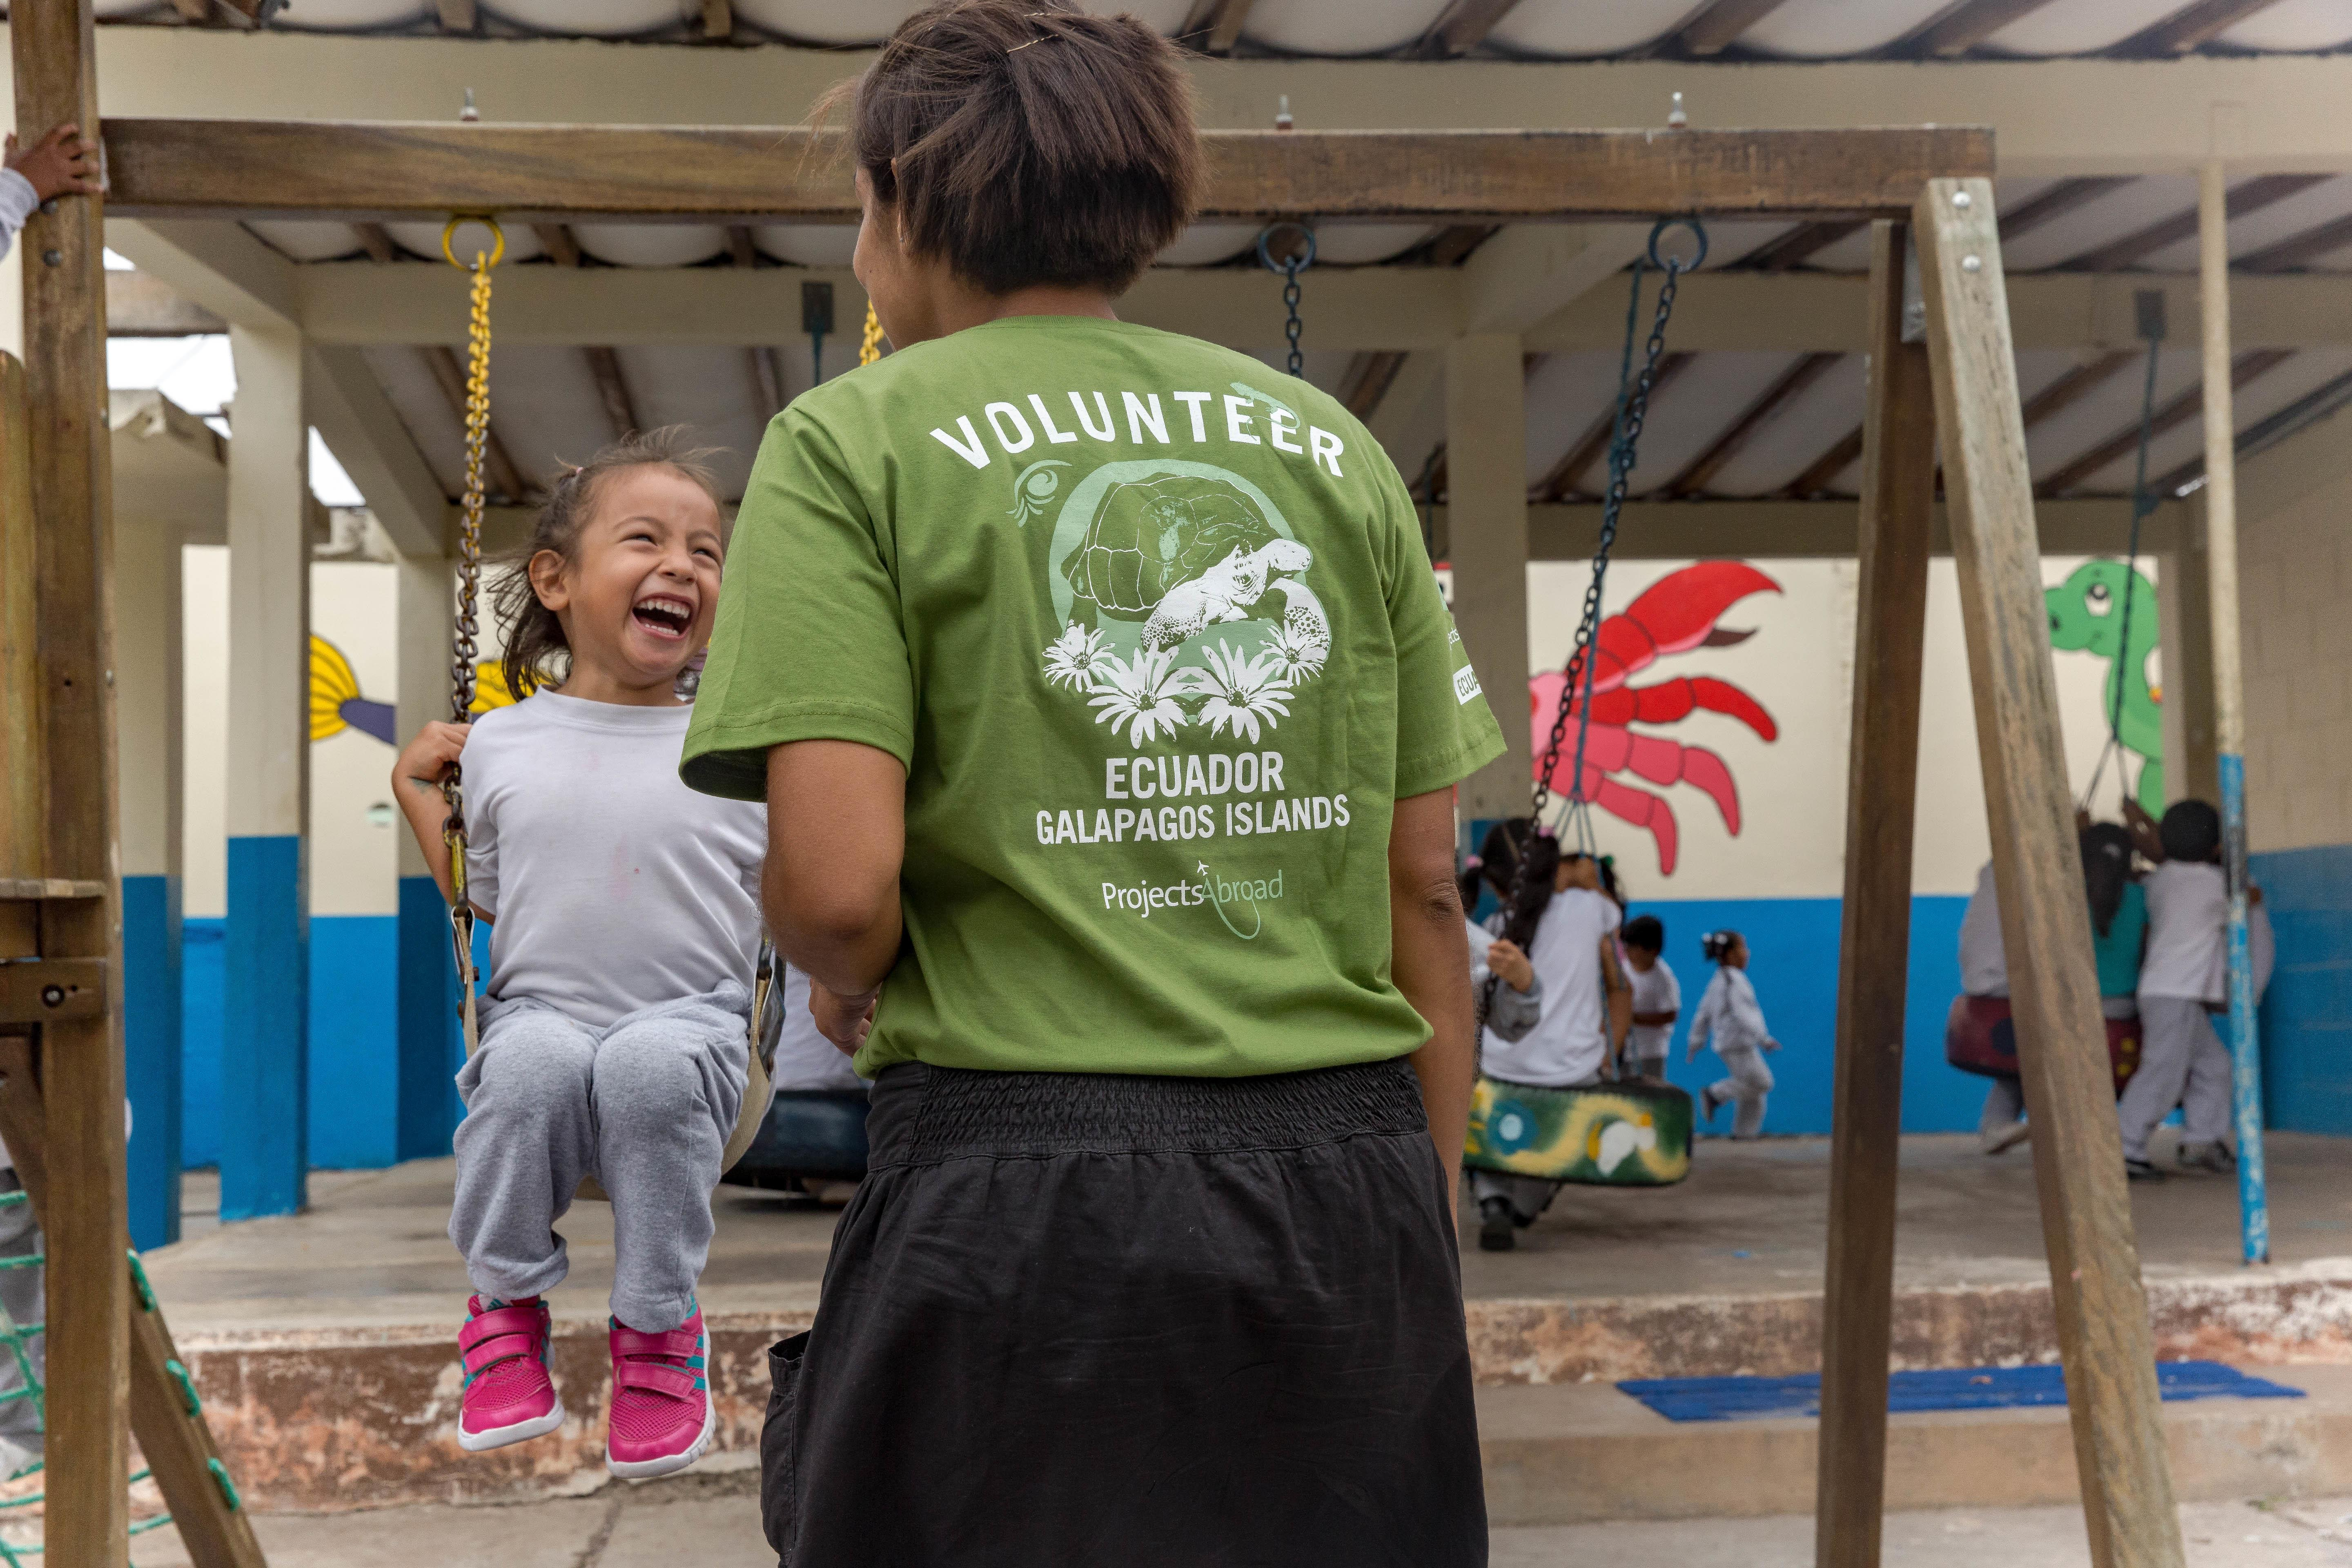 A teenager does conservation volunteer work and works with children in the Galapagos